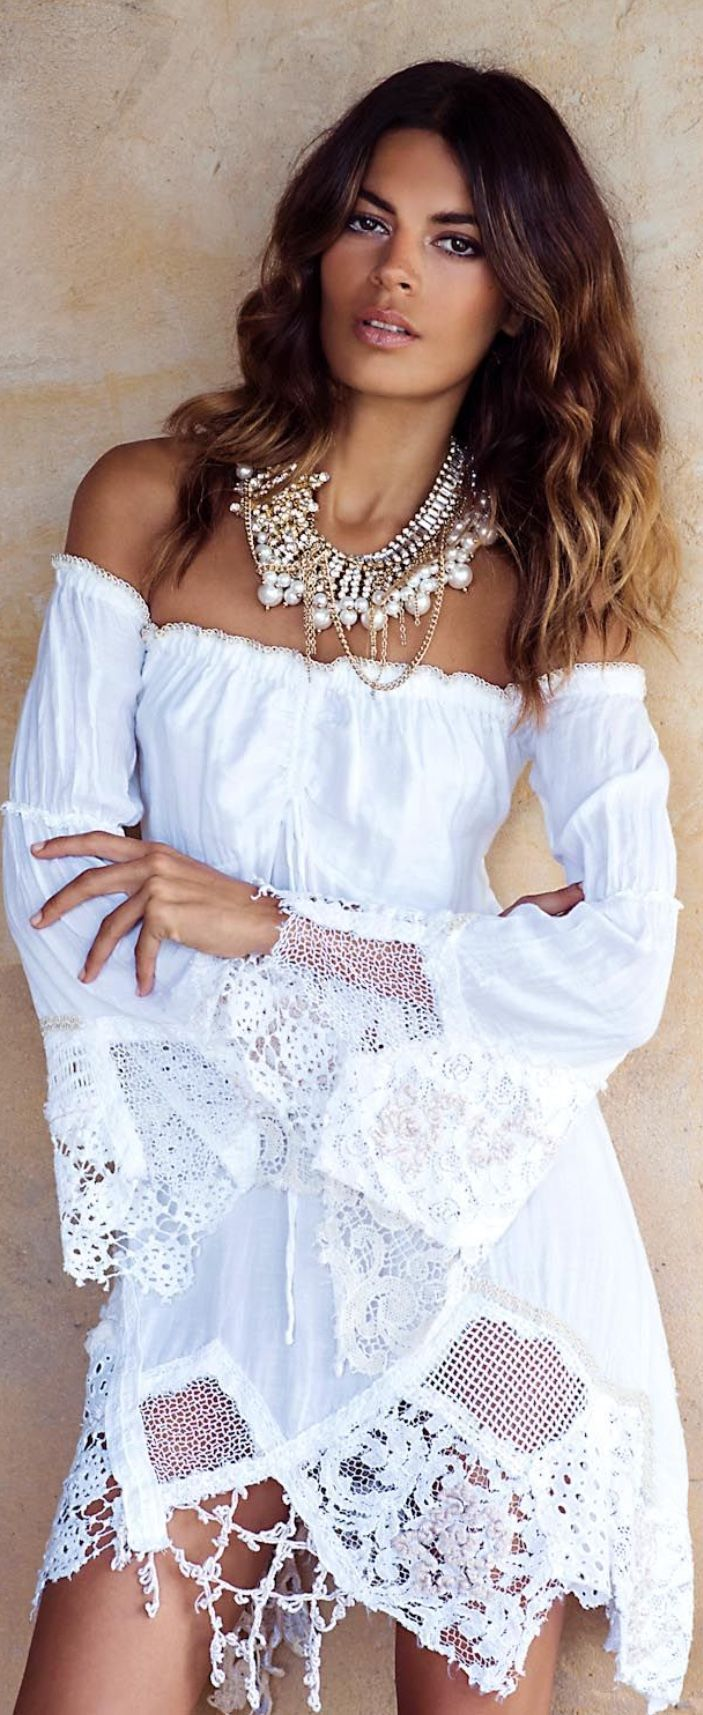 nice Boho bohemian hippie gypsy style. For more follow www.pinterest.com/ninayay an... - My blog dezdemon-topfashiontrends.pw